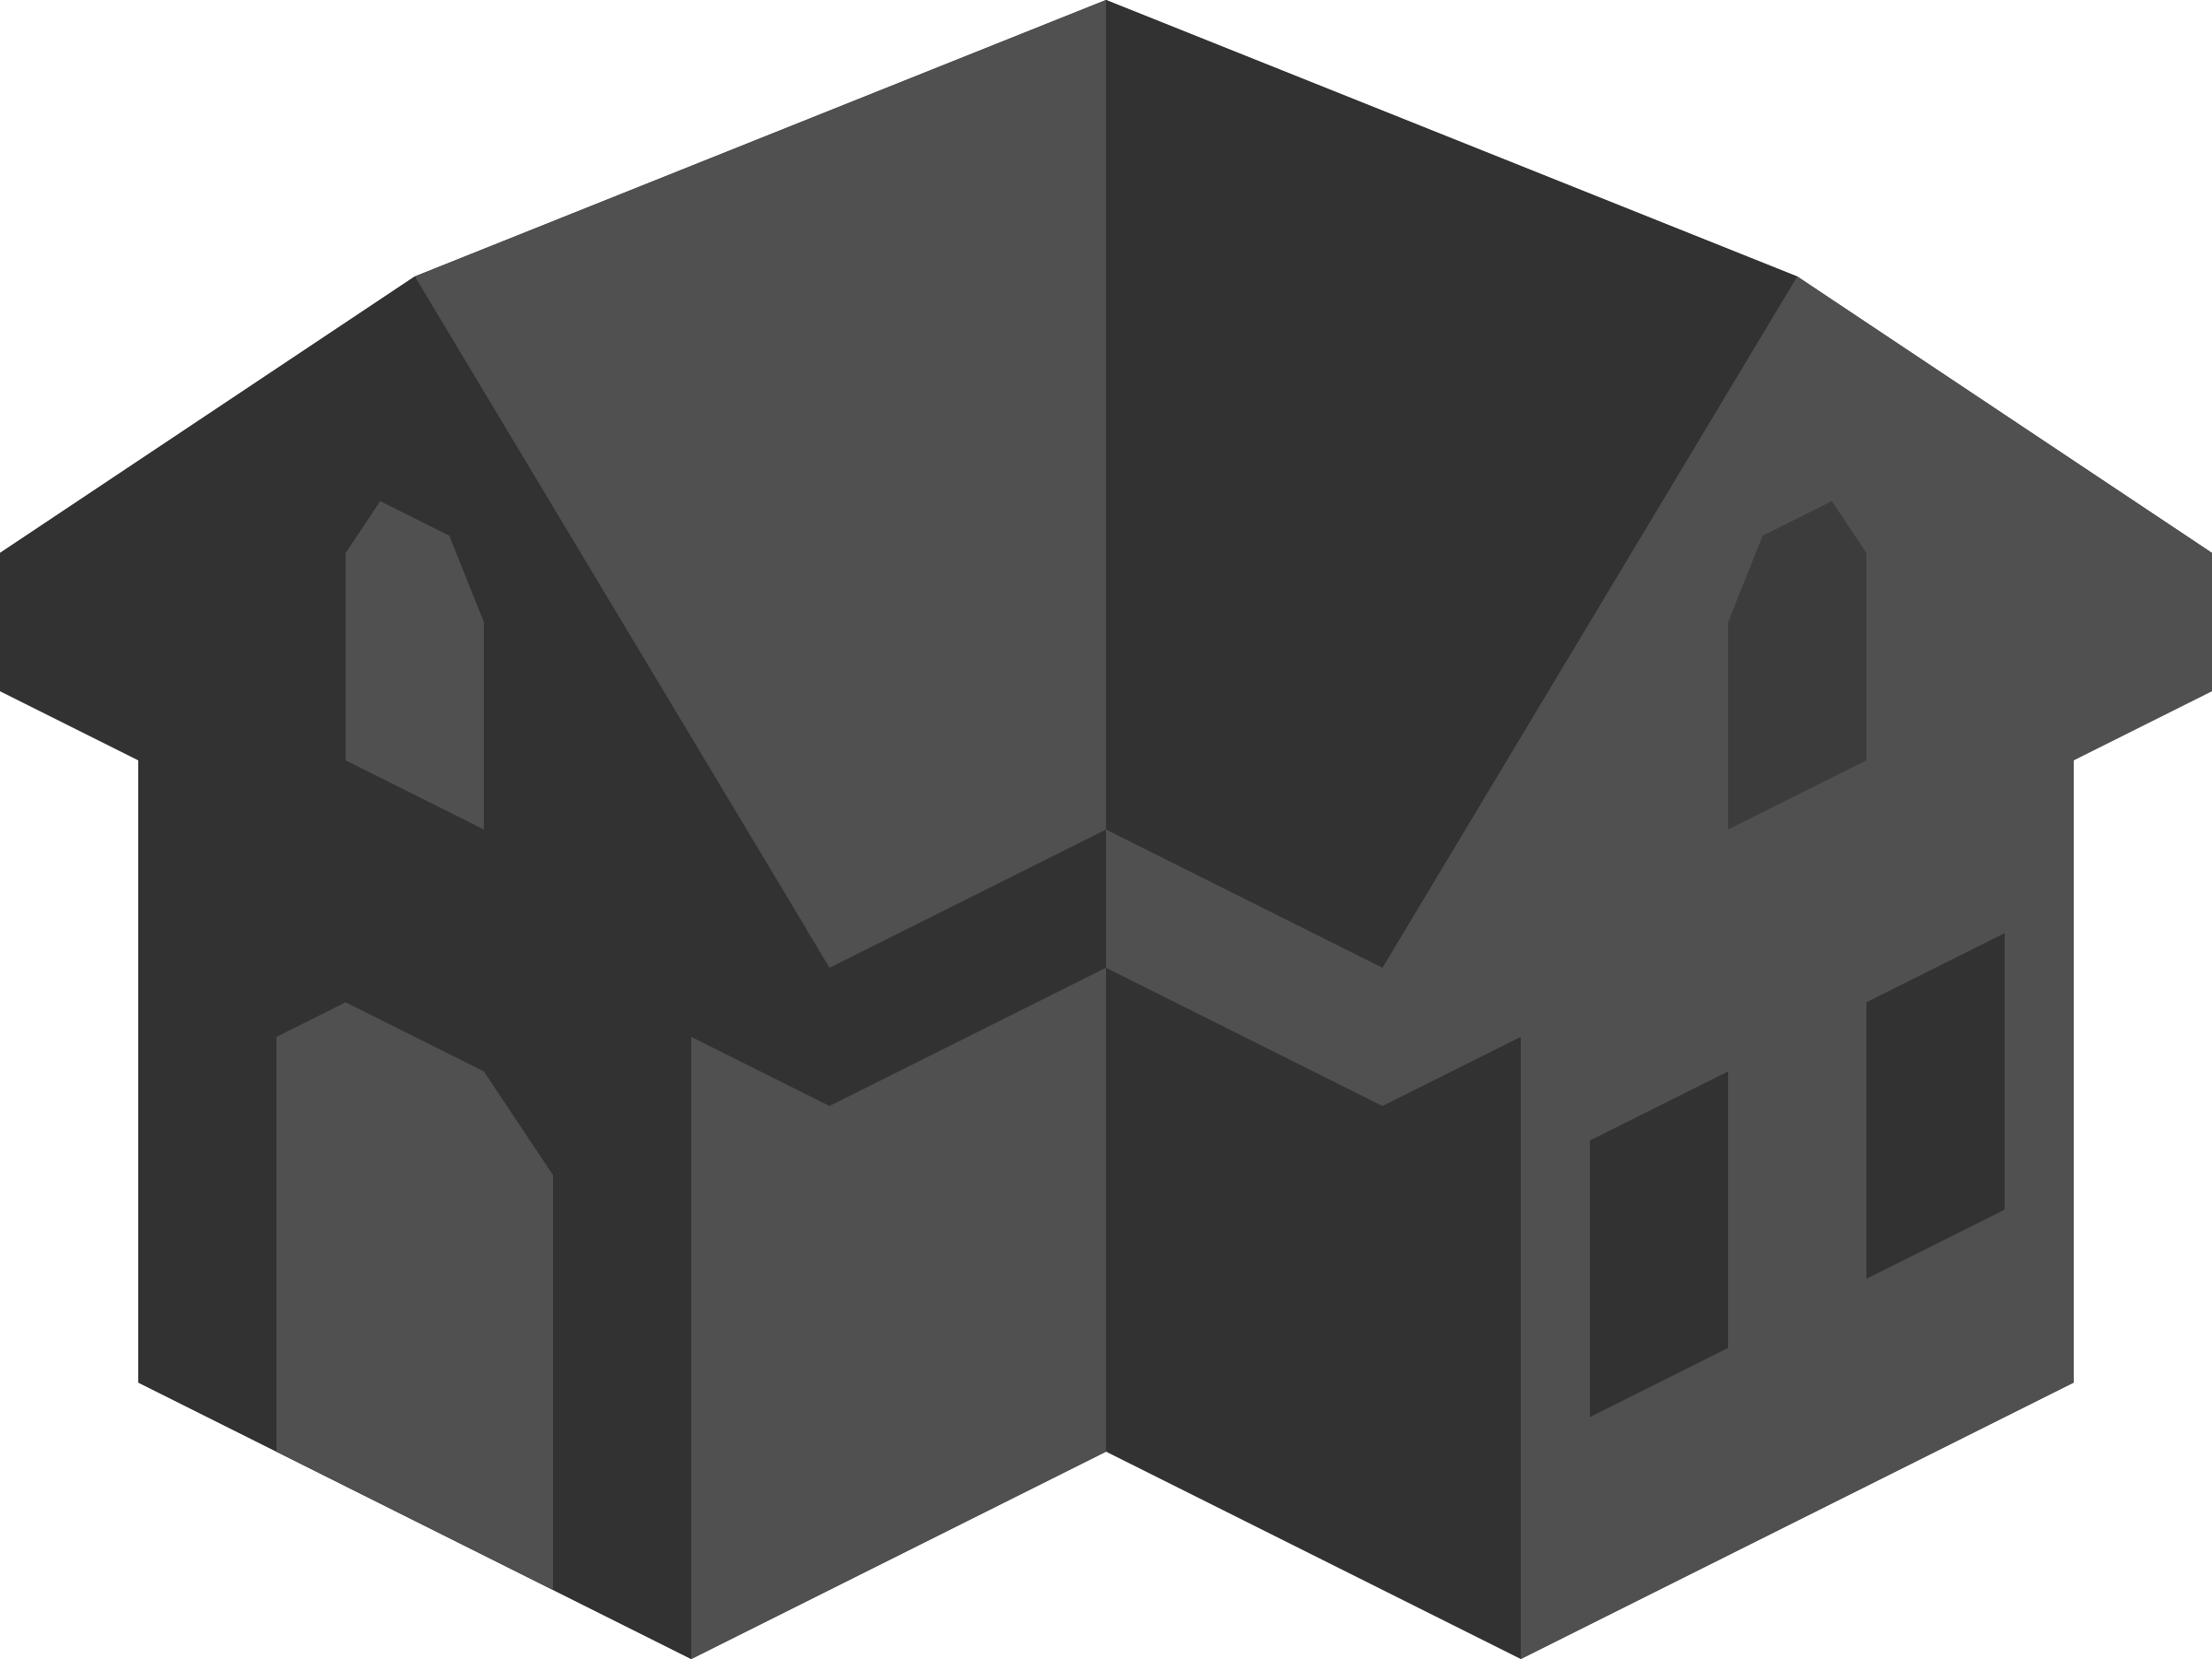 House construction clipart picture freeuse download Clipart - Placeholder Isometric Building Icon Colored Dark Alternative 2 picture freeuse download